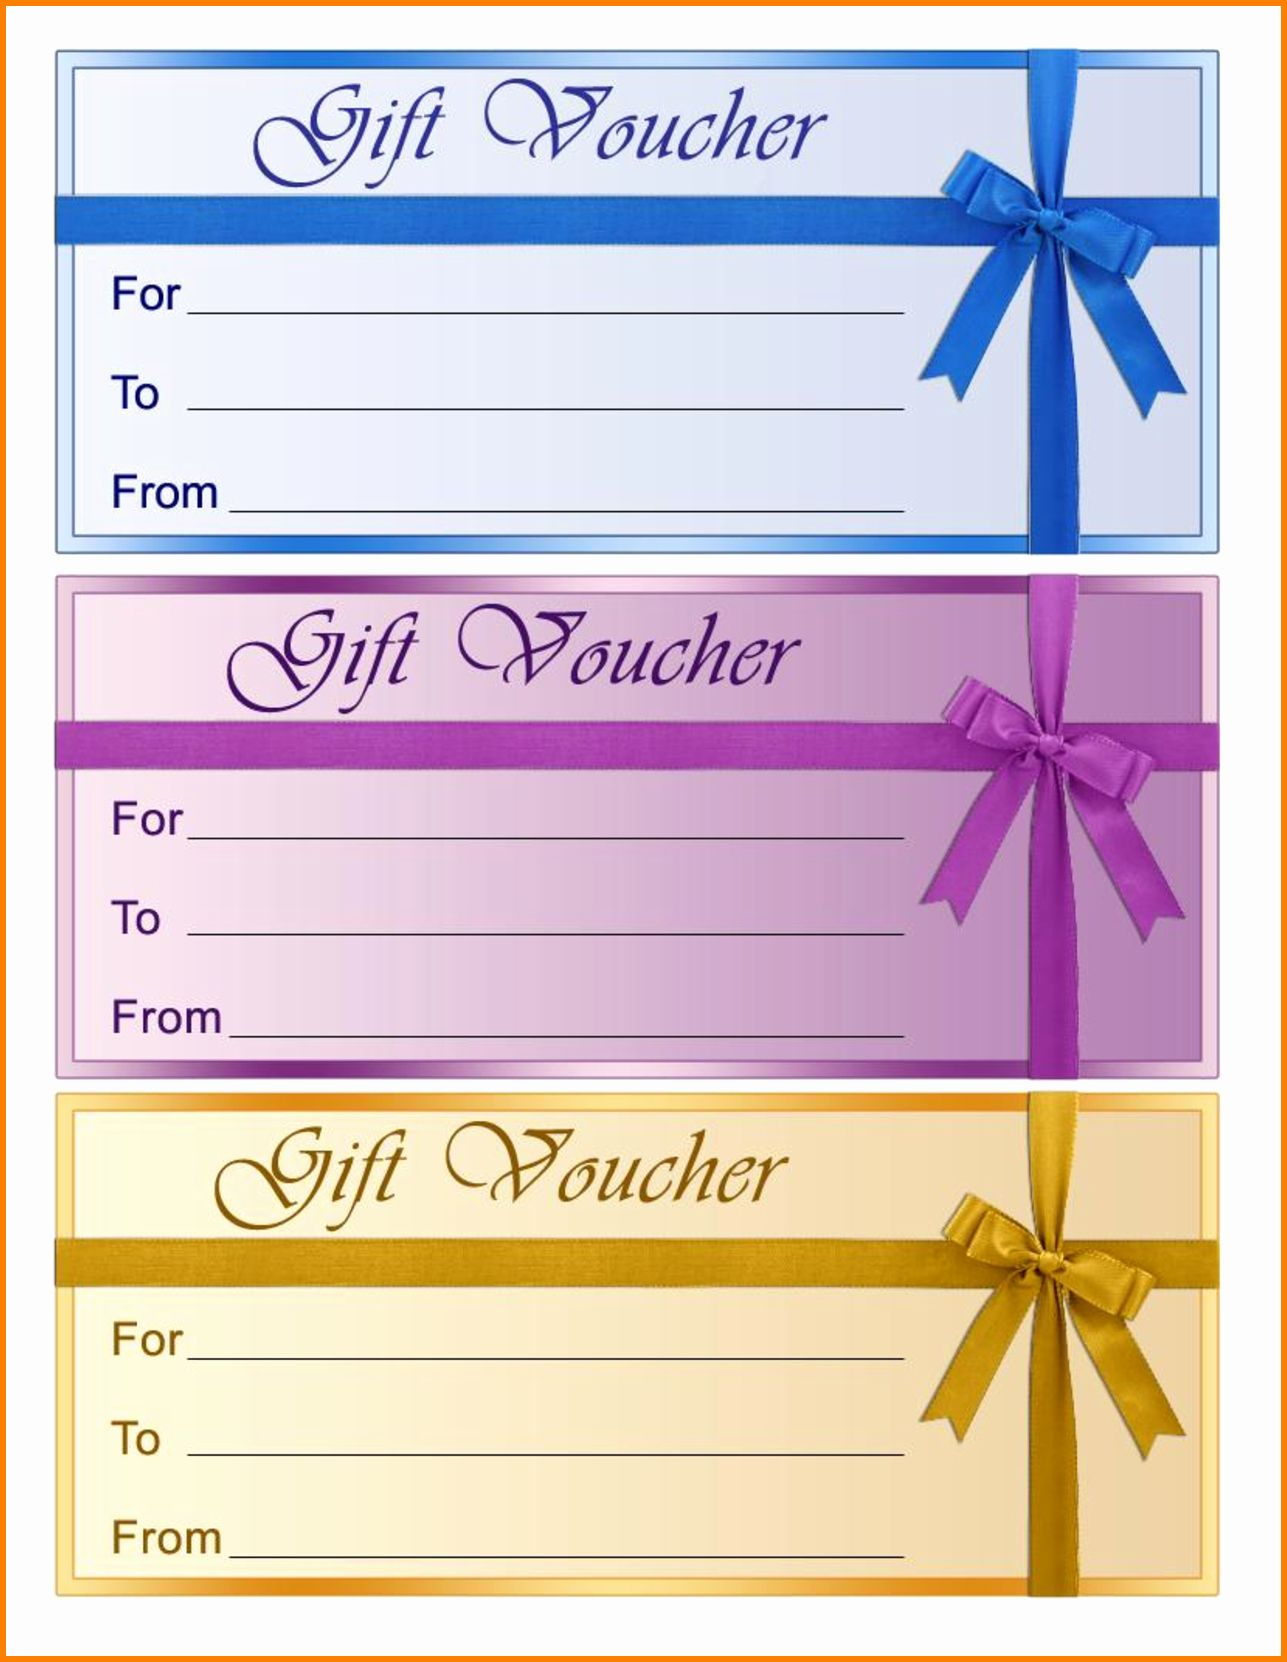 Free Coupon Template Word New Perfect Format Samples Gift